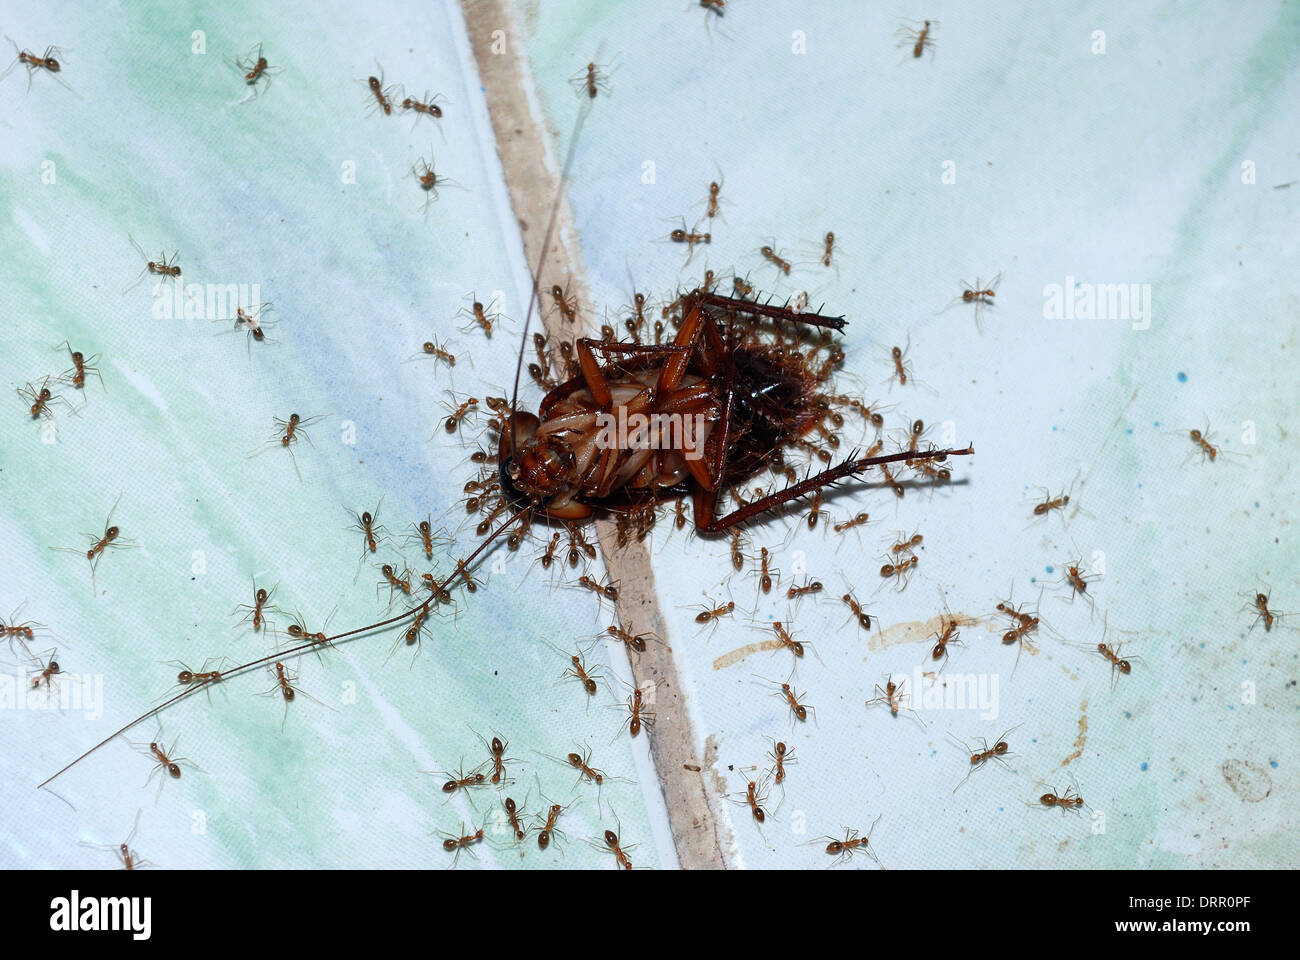 Ants Carrying Its Food Stock Photos & Ants Carrying Its Food Stock ...